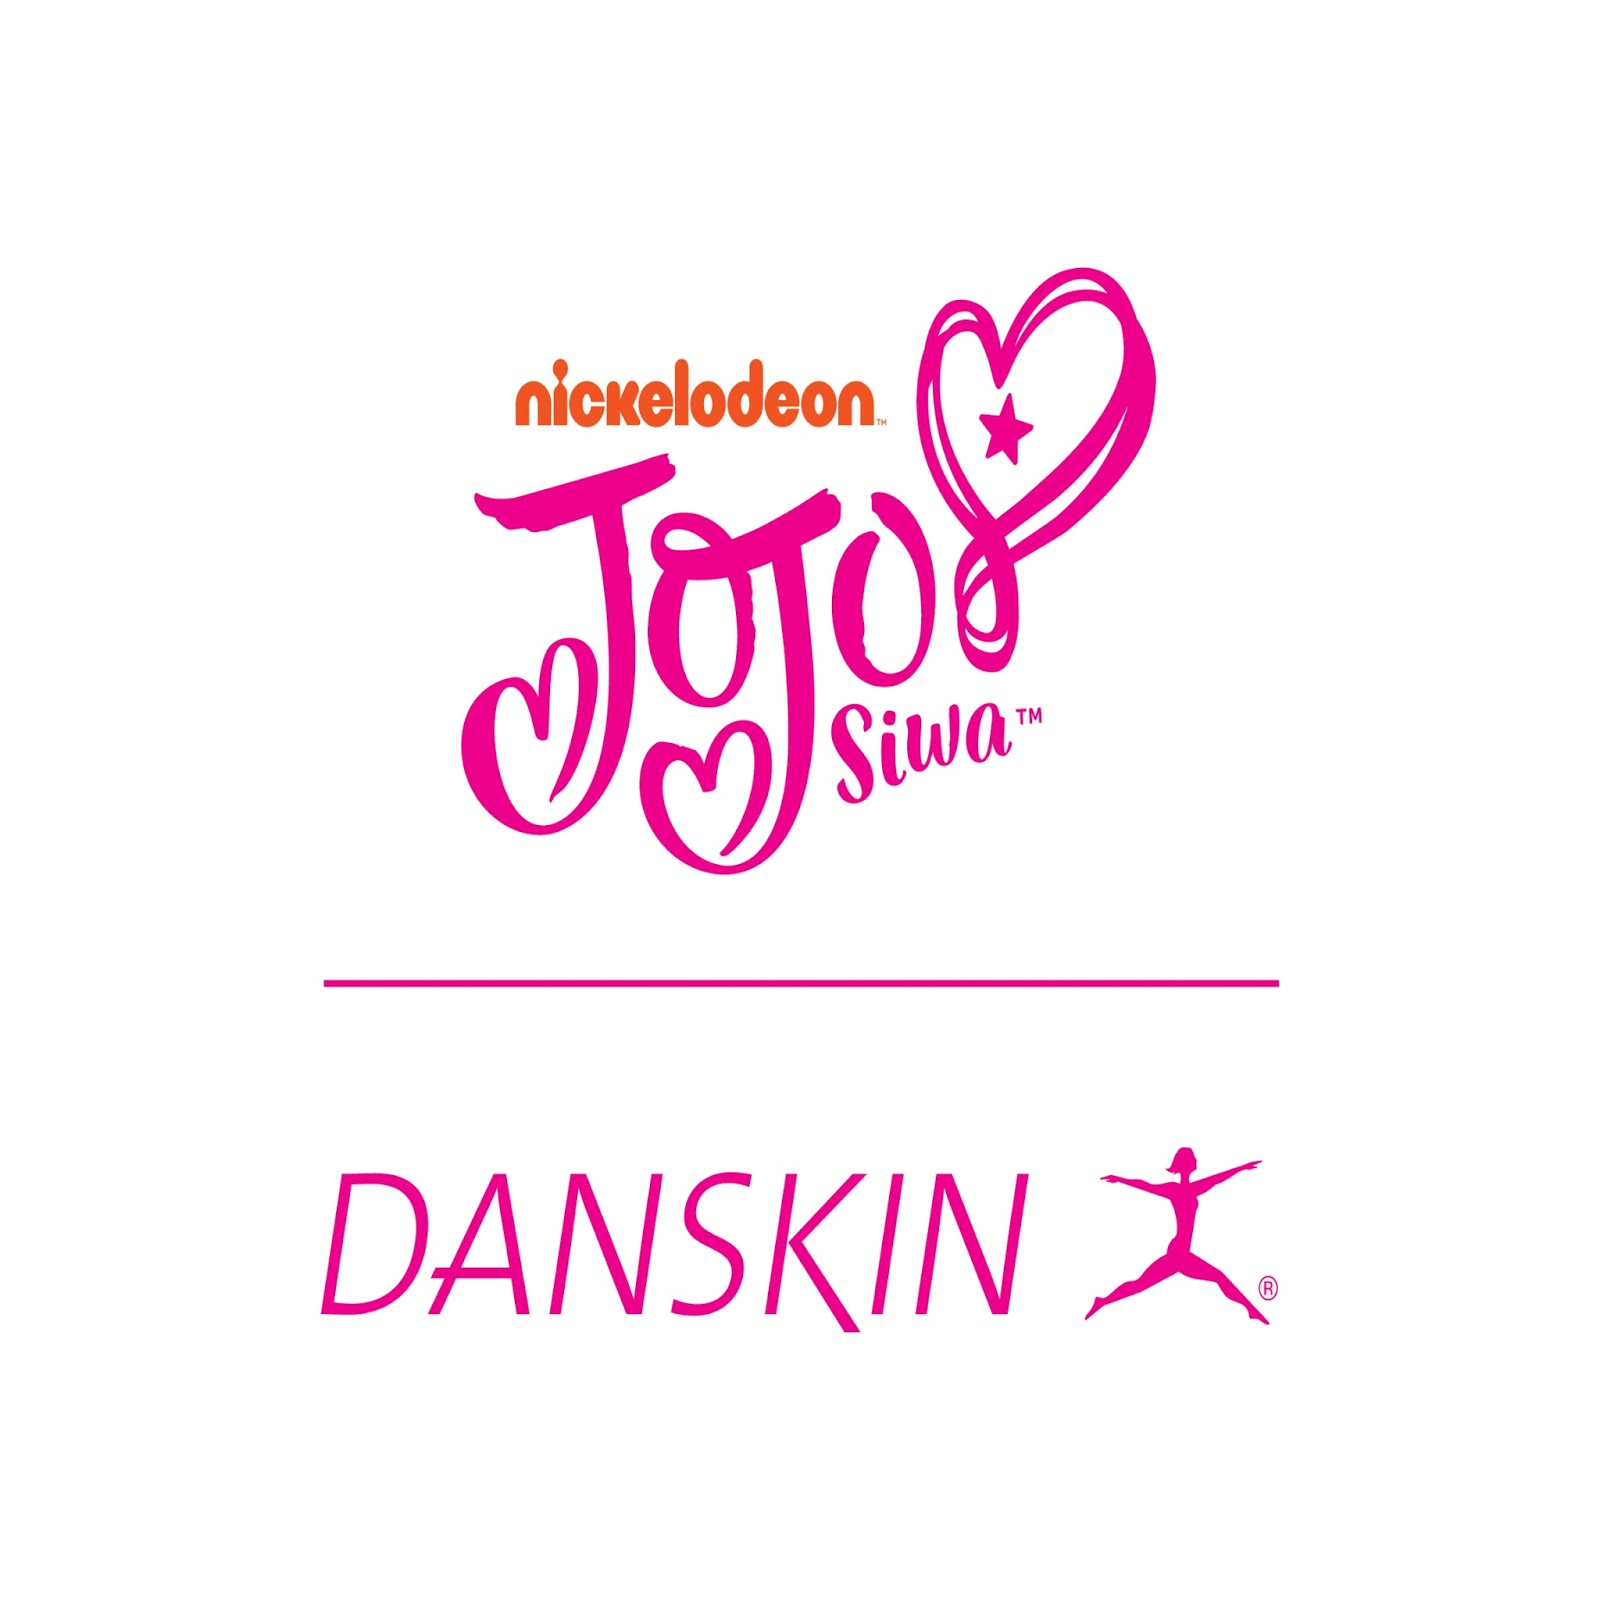 NickALive!: Nickelodeon Partners With Danskin To Launch Line